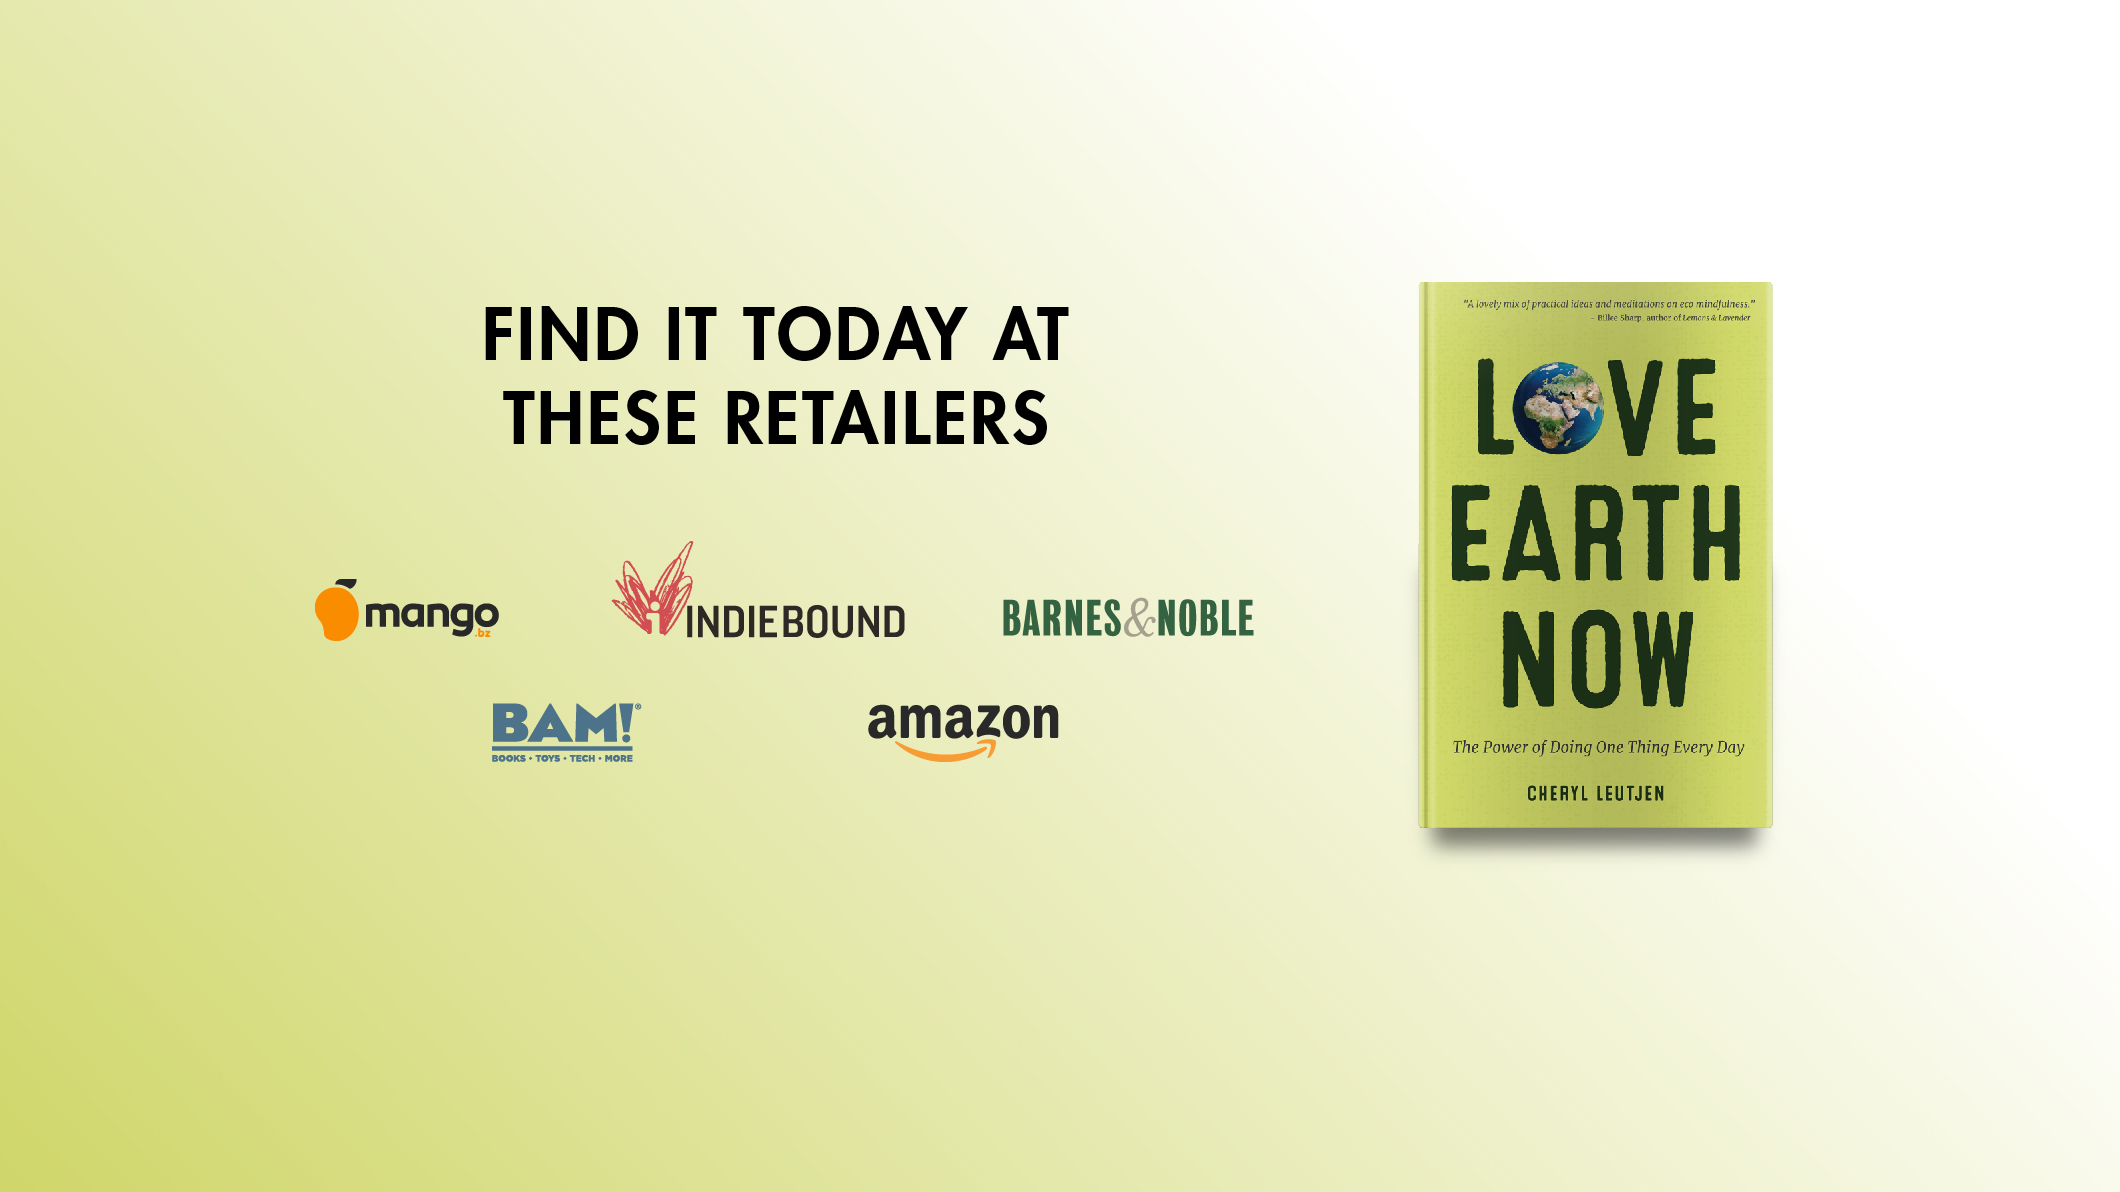 "<em style=""color:ffffff"">Love Earth Now</em><br>is available at these retailers"